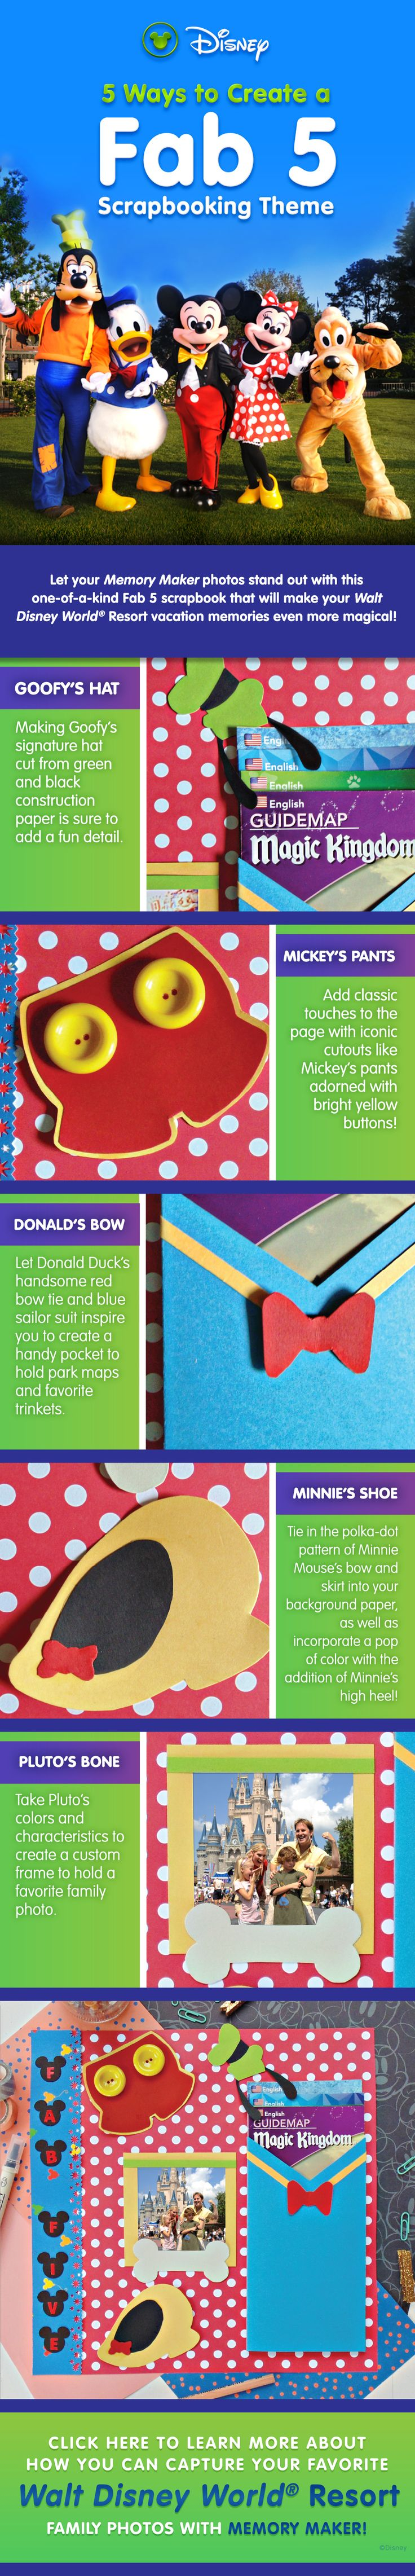 How to scrapbook disney vacation - Clever Ideas For Your Disney Vacation Scrapbook Note The Pin Links Out To